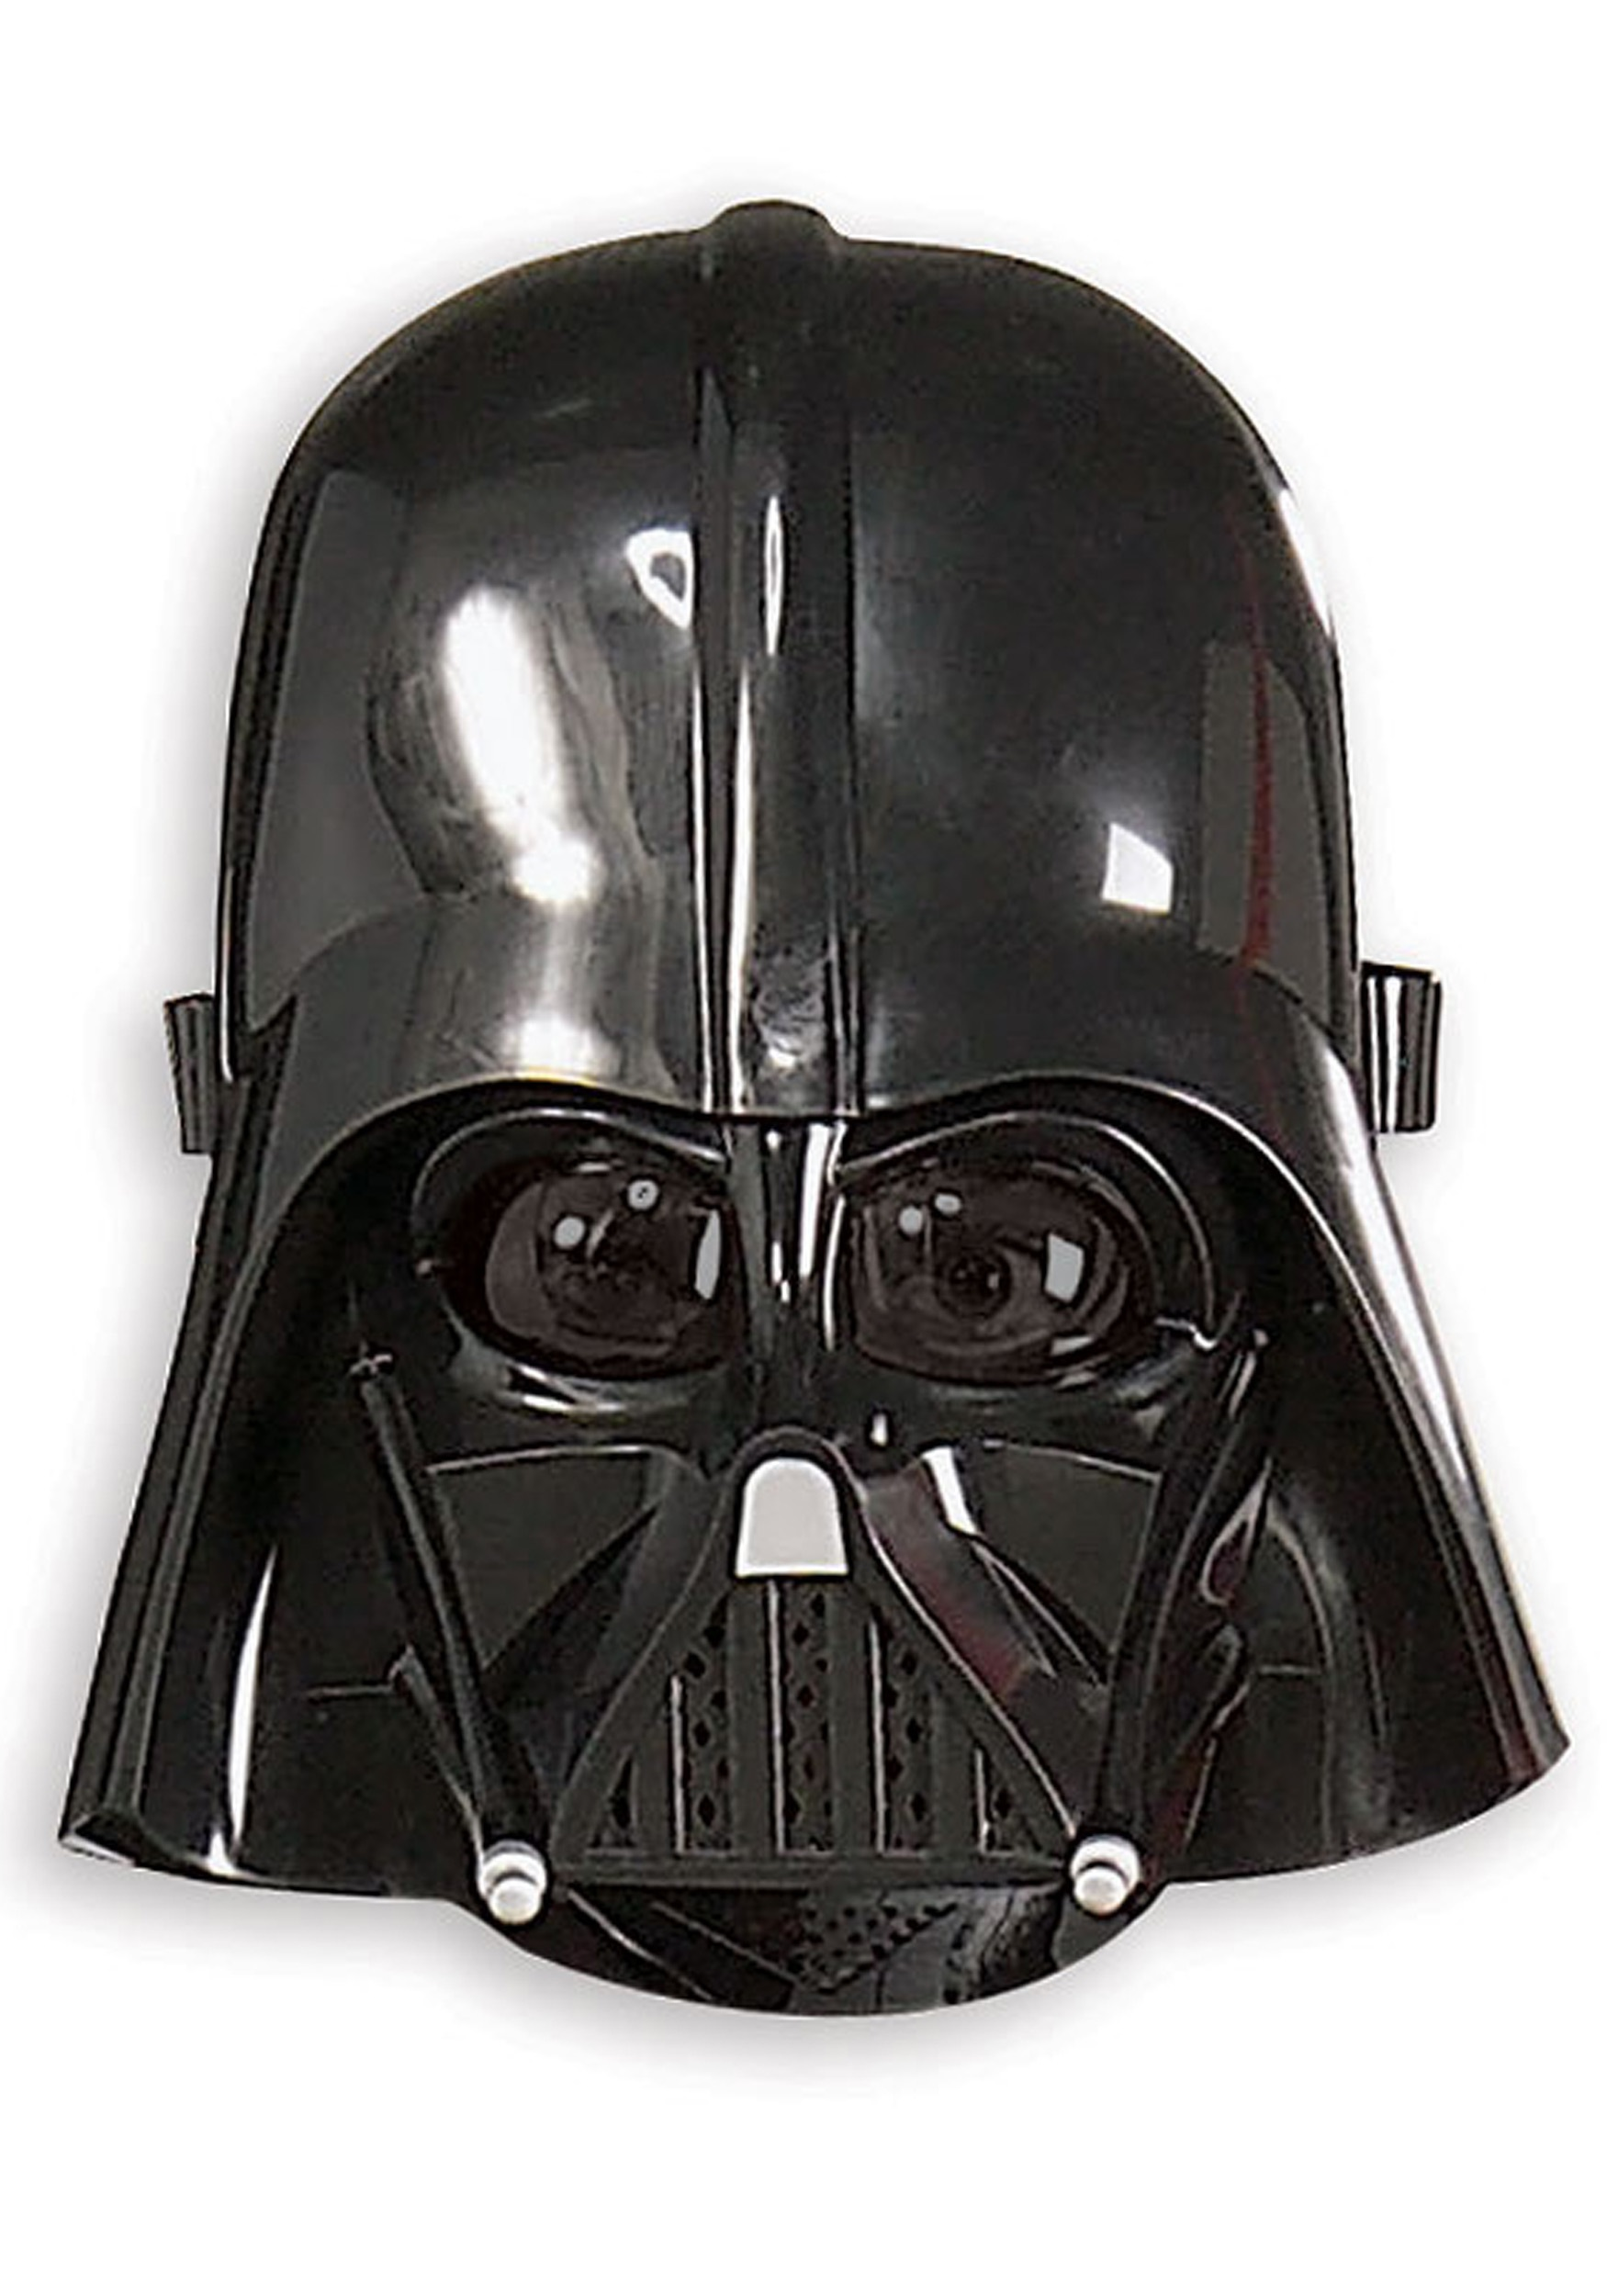 Kids Star Wars Darth Vader Mask RU3441